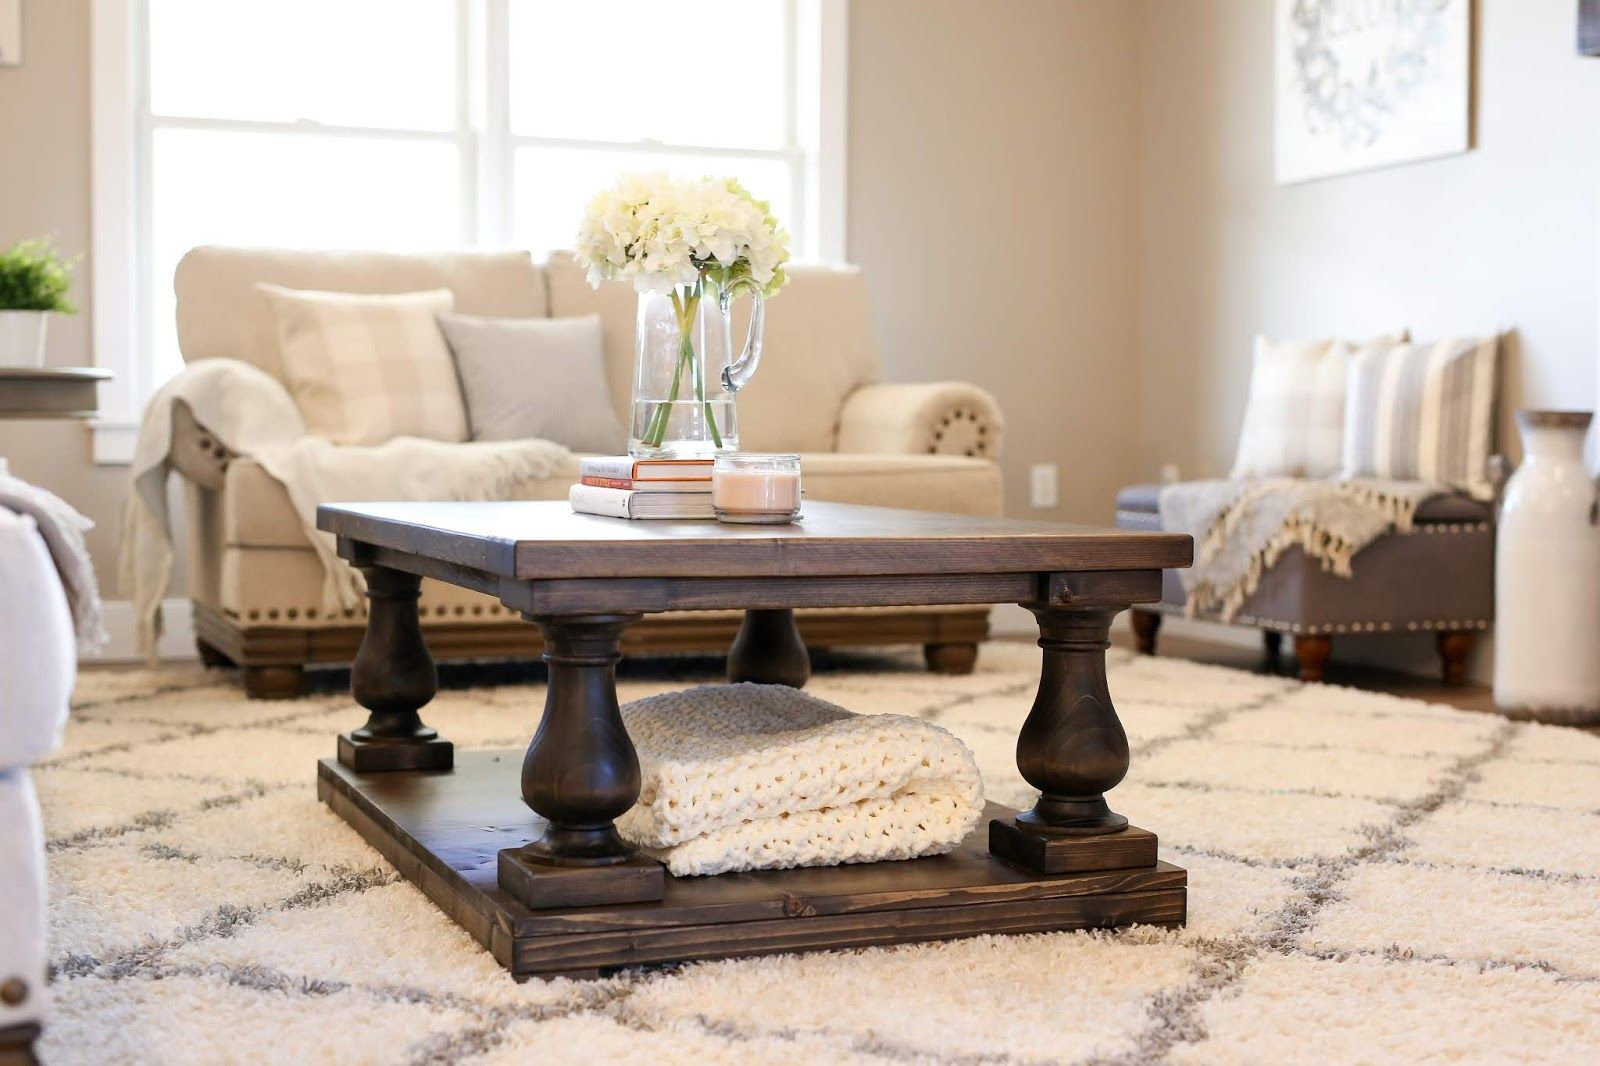 Balustrade coffee table diy plans with images coffee